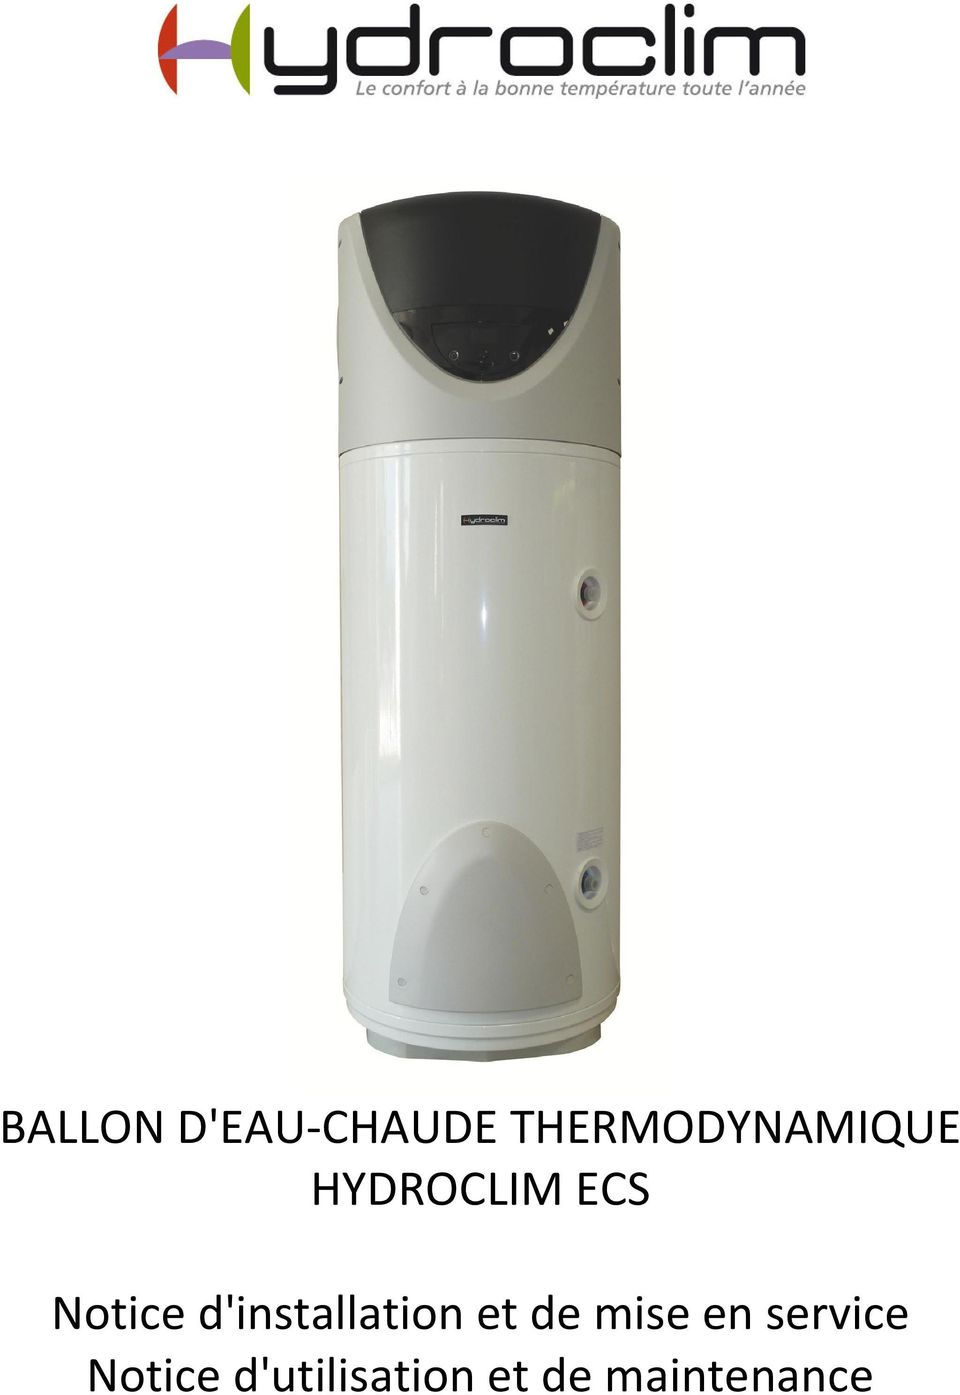 ballon eau chaude thermodynamique prix d un ballon d eau. Black Bedroom Furniture Sets. Home Design Ideas